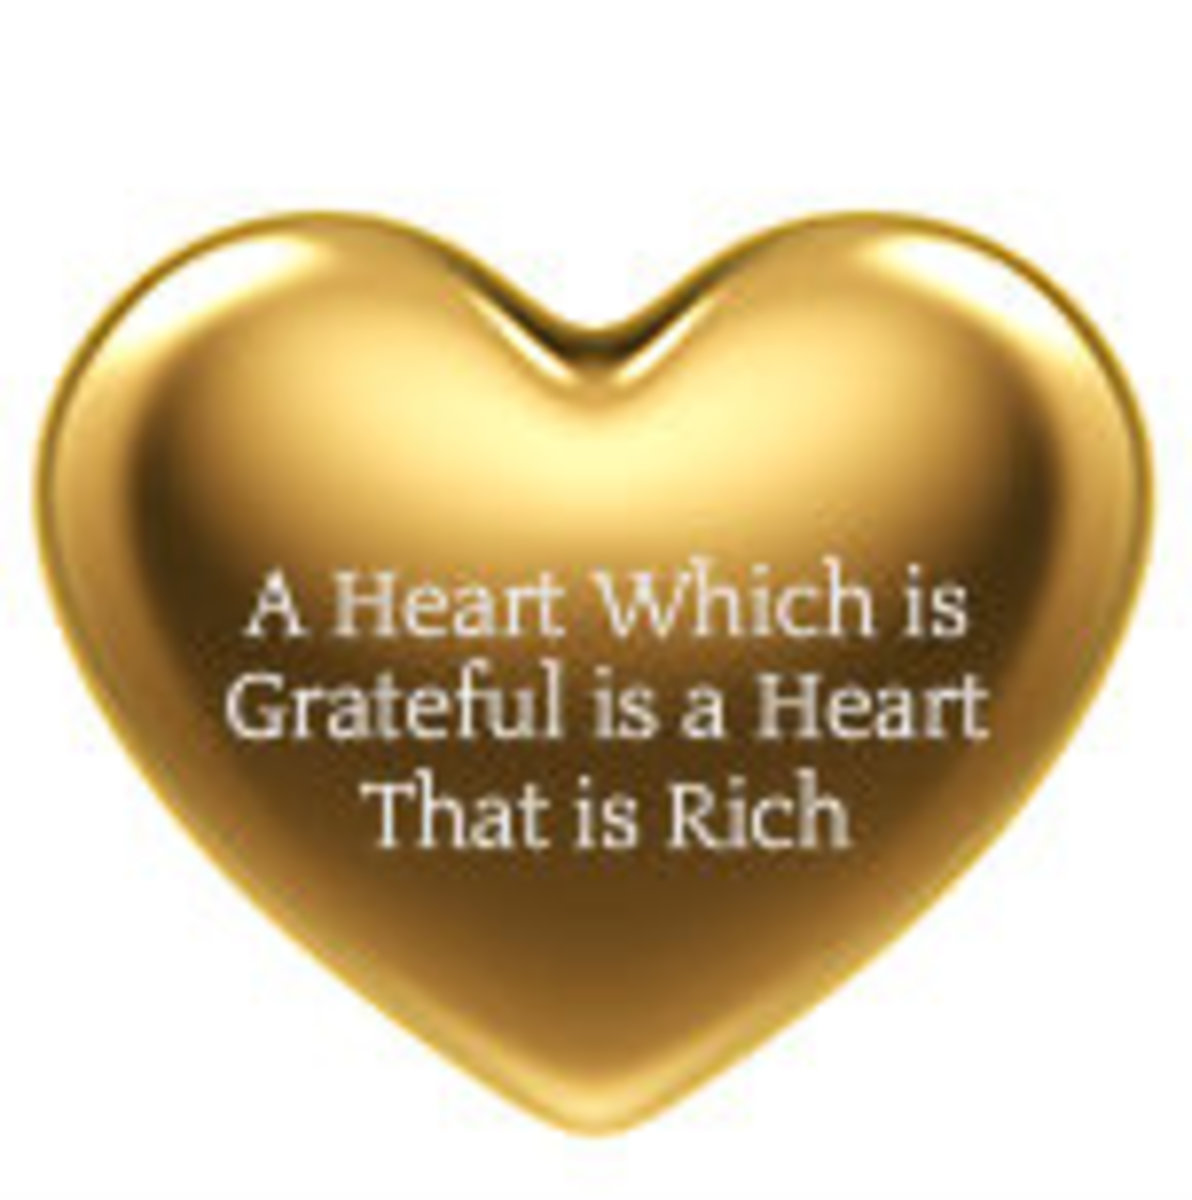 In the midst of a grateful heart, we find the peace that passes our human understanding.